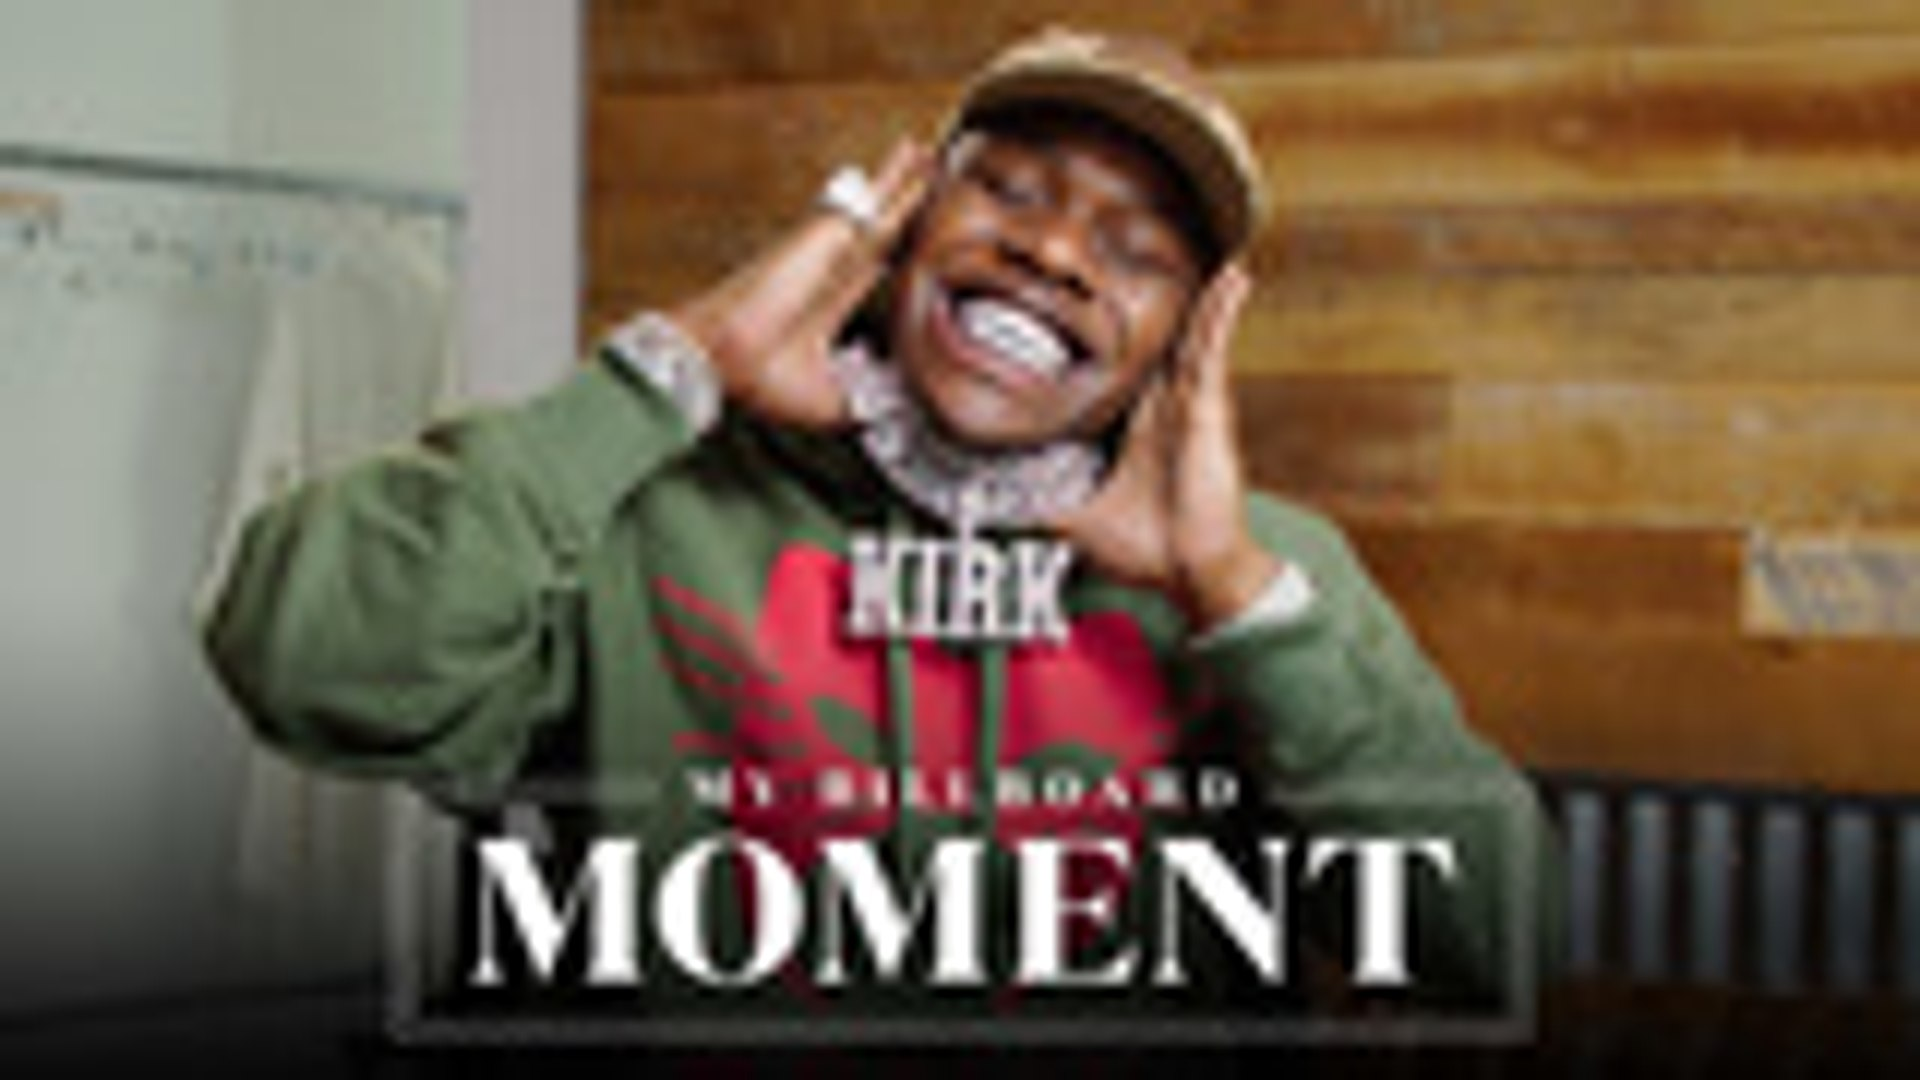 DaBaby Calls Covering Billboard Magazine 'Nothing Short of a Blessing' | My Billboard Moment